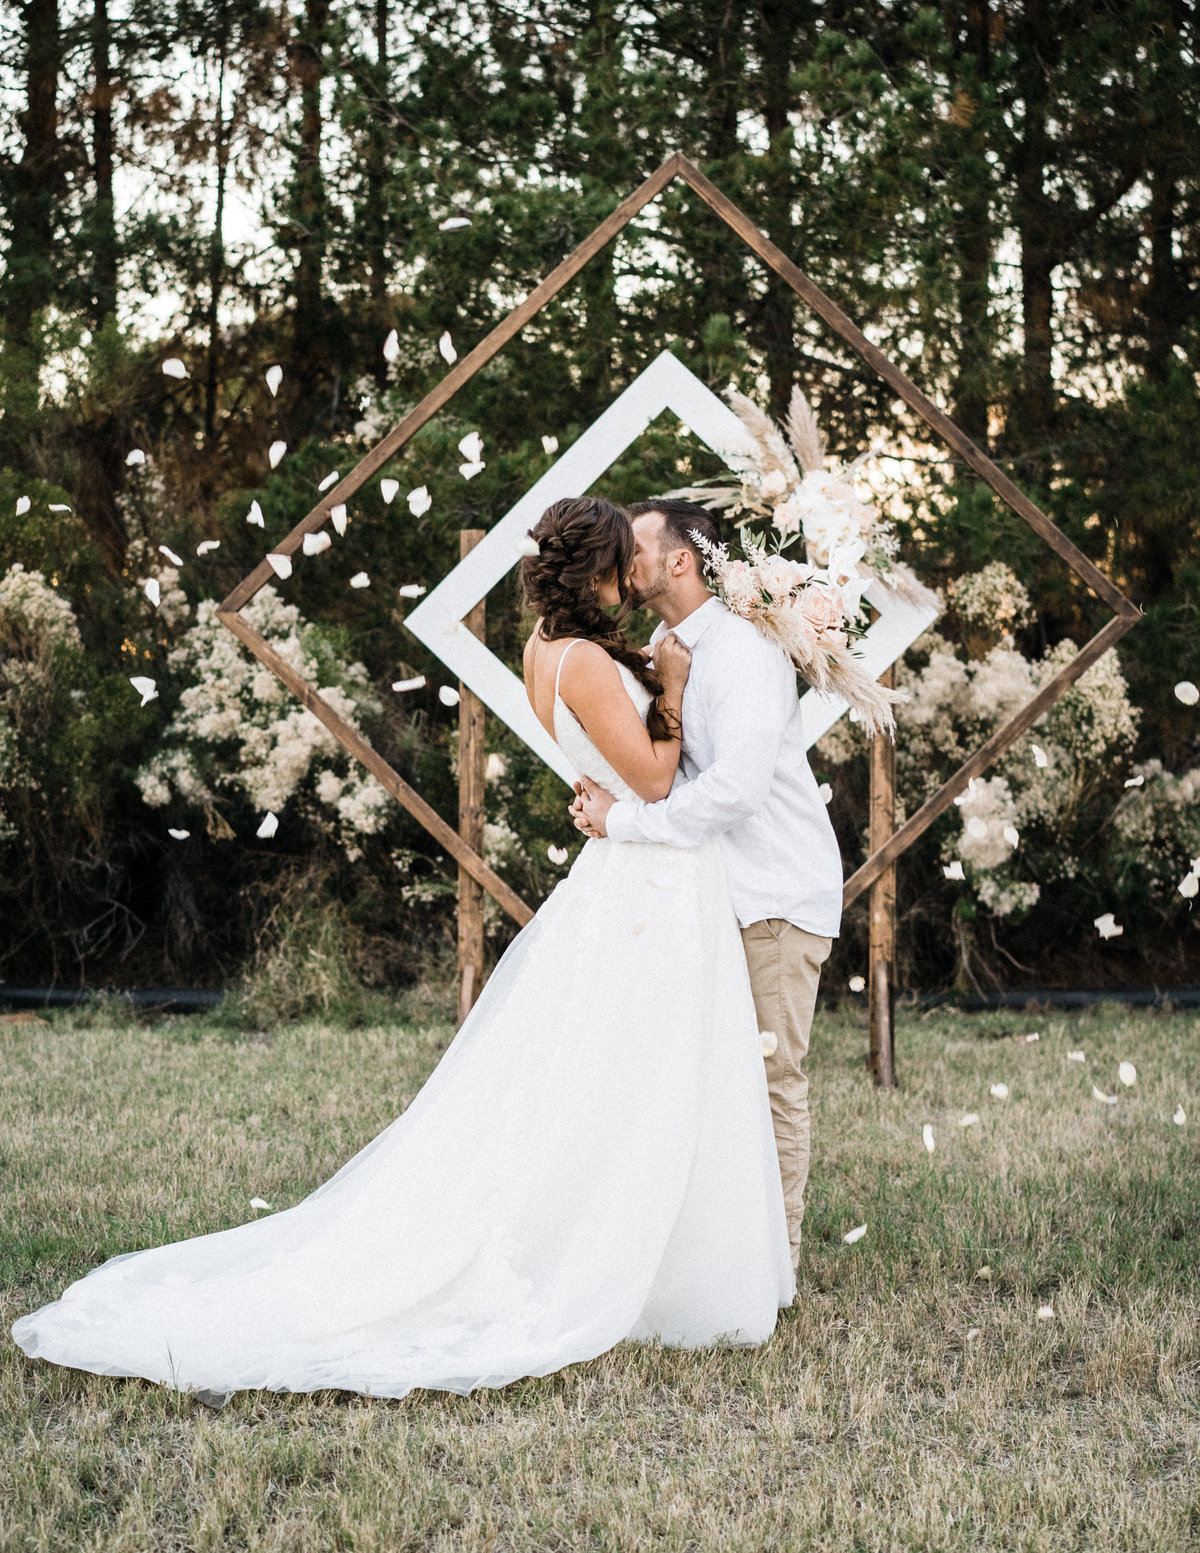 Atlas Rose Photography AZ - Schnepf Farms Boho Bridal01